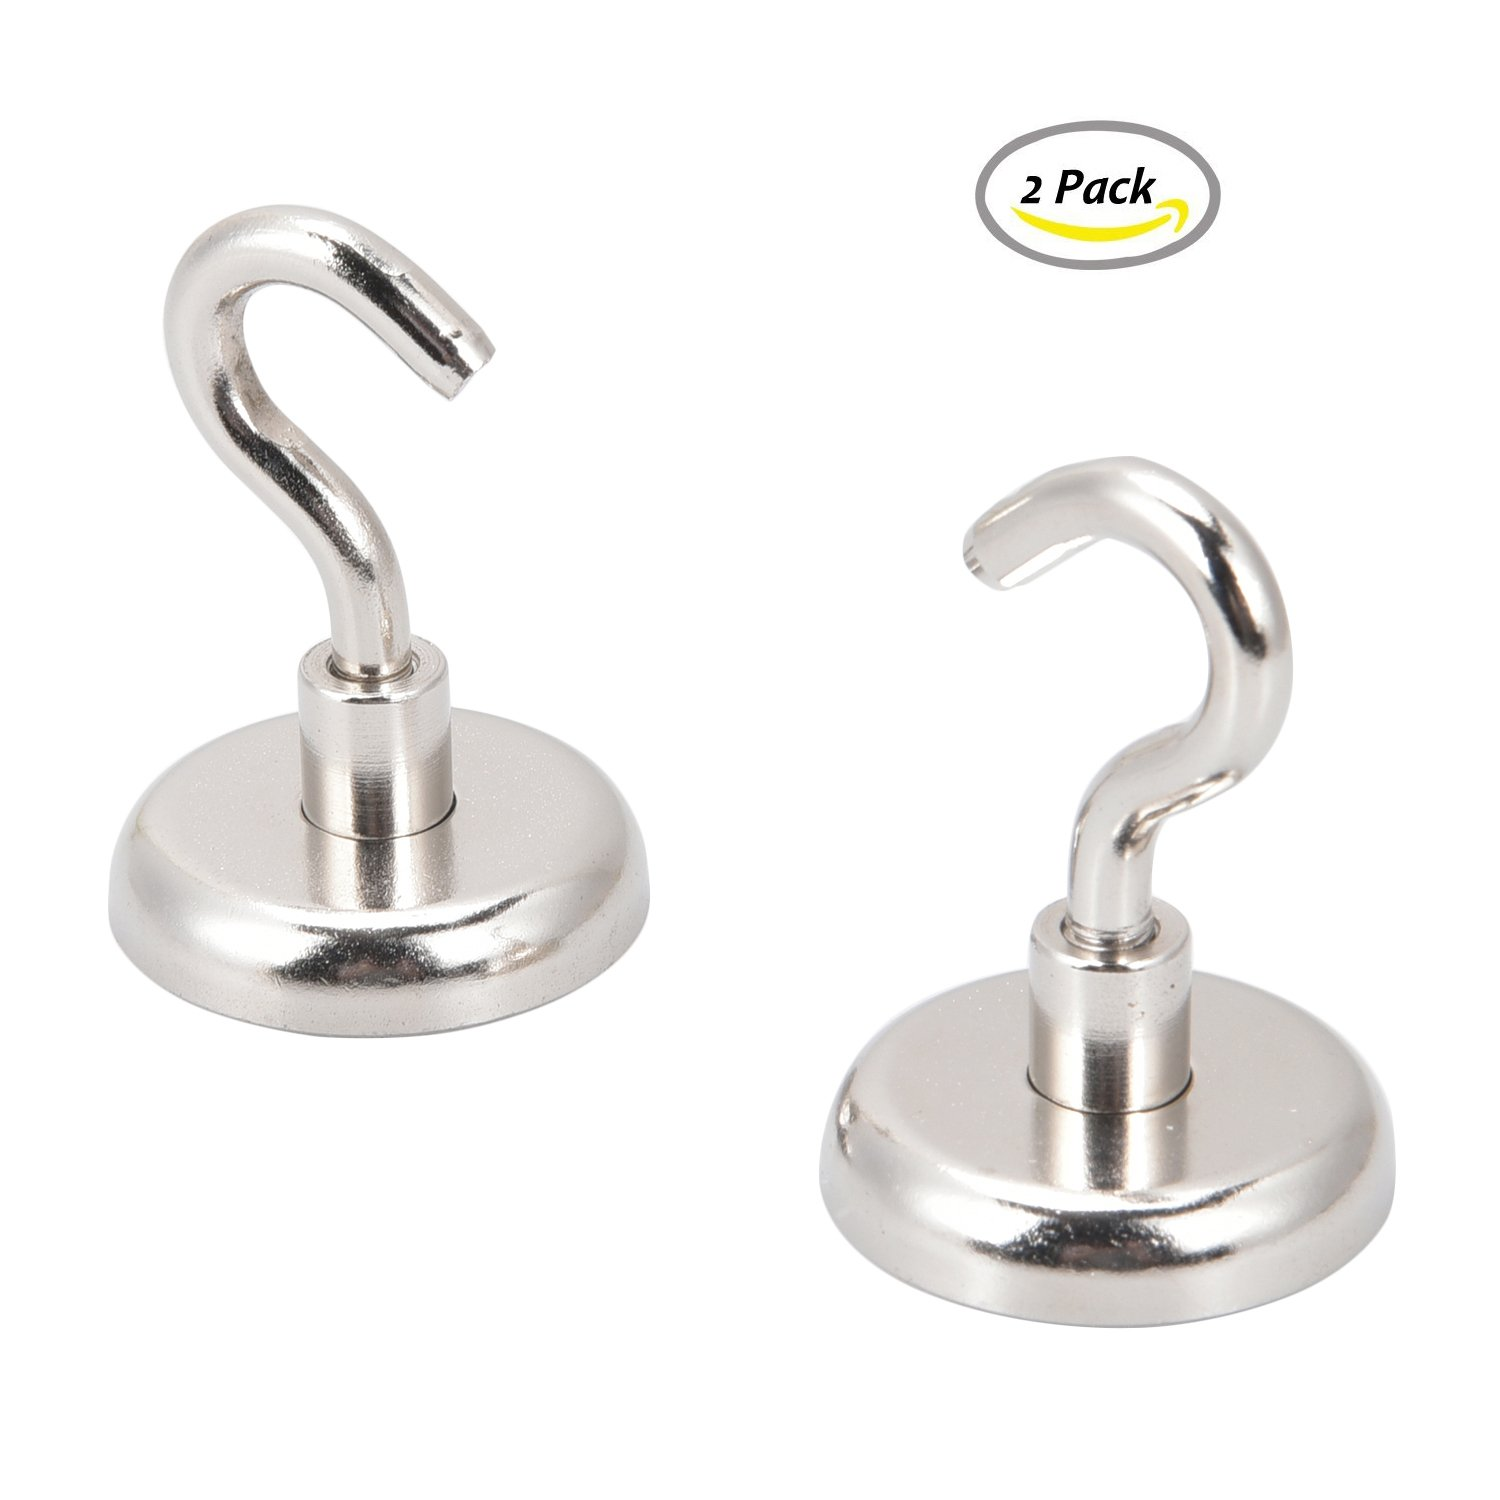 Powerful Strong Magnetic Hooks - The Best Strongest Super Heavy Duty Neodymium Hanging Hooks for Refrigerator And Magnetic or Metal Surfaces,Great Keys Sports Equipment Tools Holder 2 Pack (90lbs) by Ulifestar